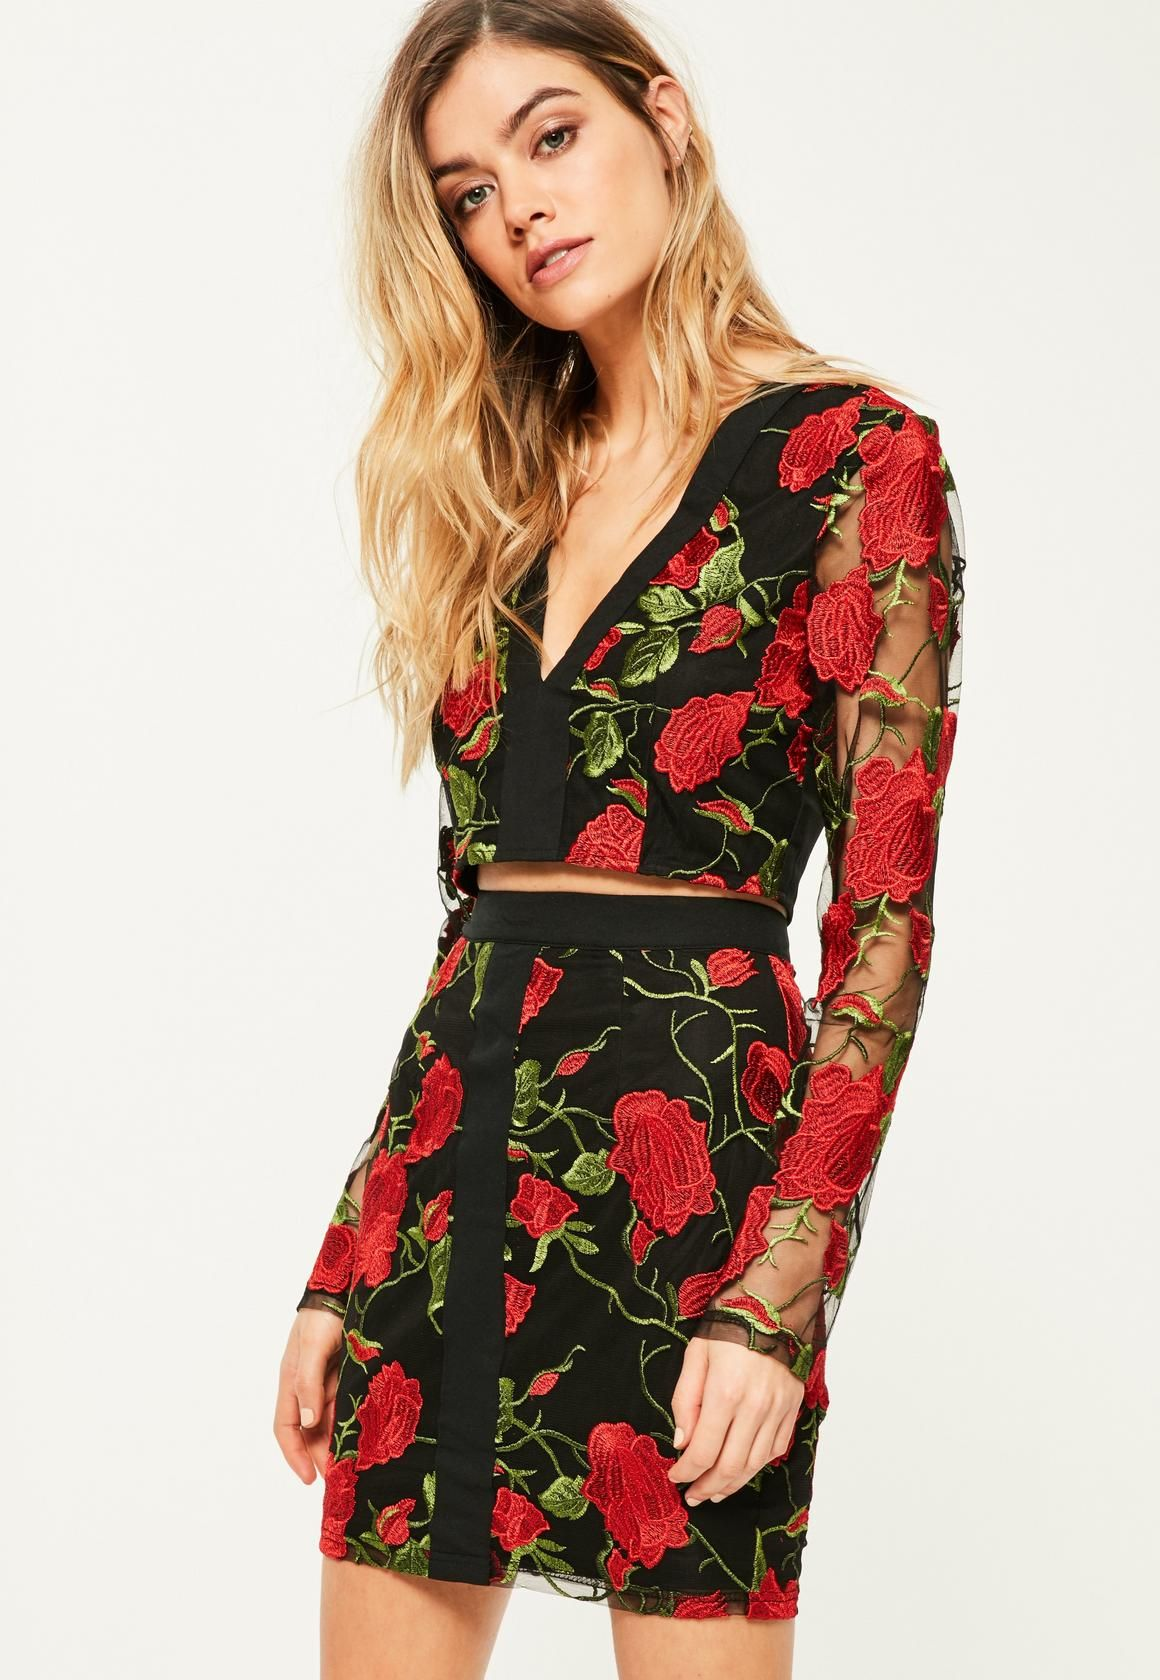 Missguided Mesh Floral Embroidered Mini Skirt Buy Cheap For Nice Cheap Outlet Store ta1scHO1H7